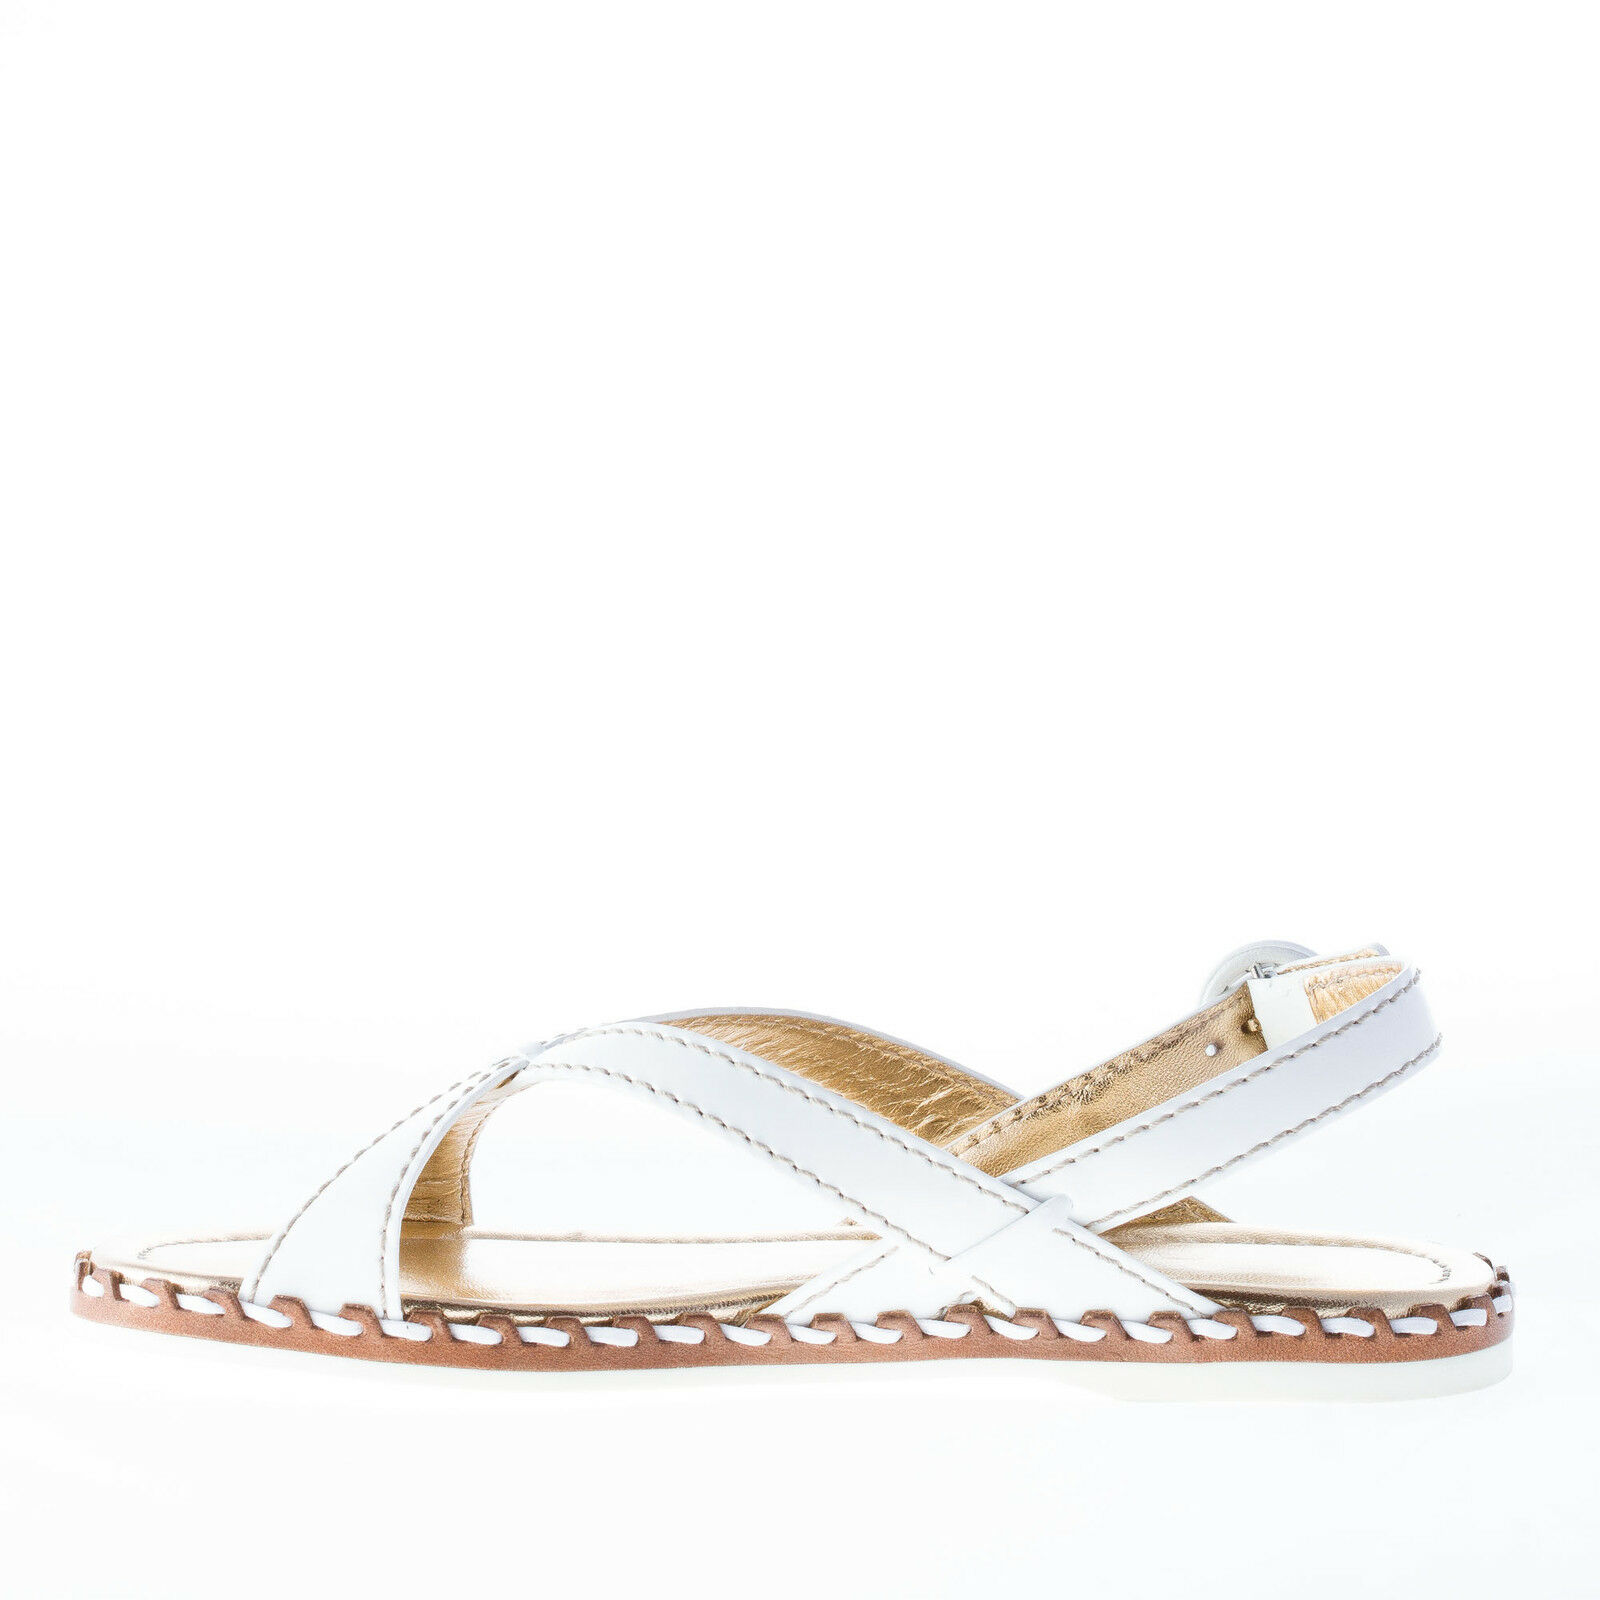 CAR CAR CAR SHOE damen schuhe Damens schuhe Weiß patent Leder Sandale with cross straps c89471